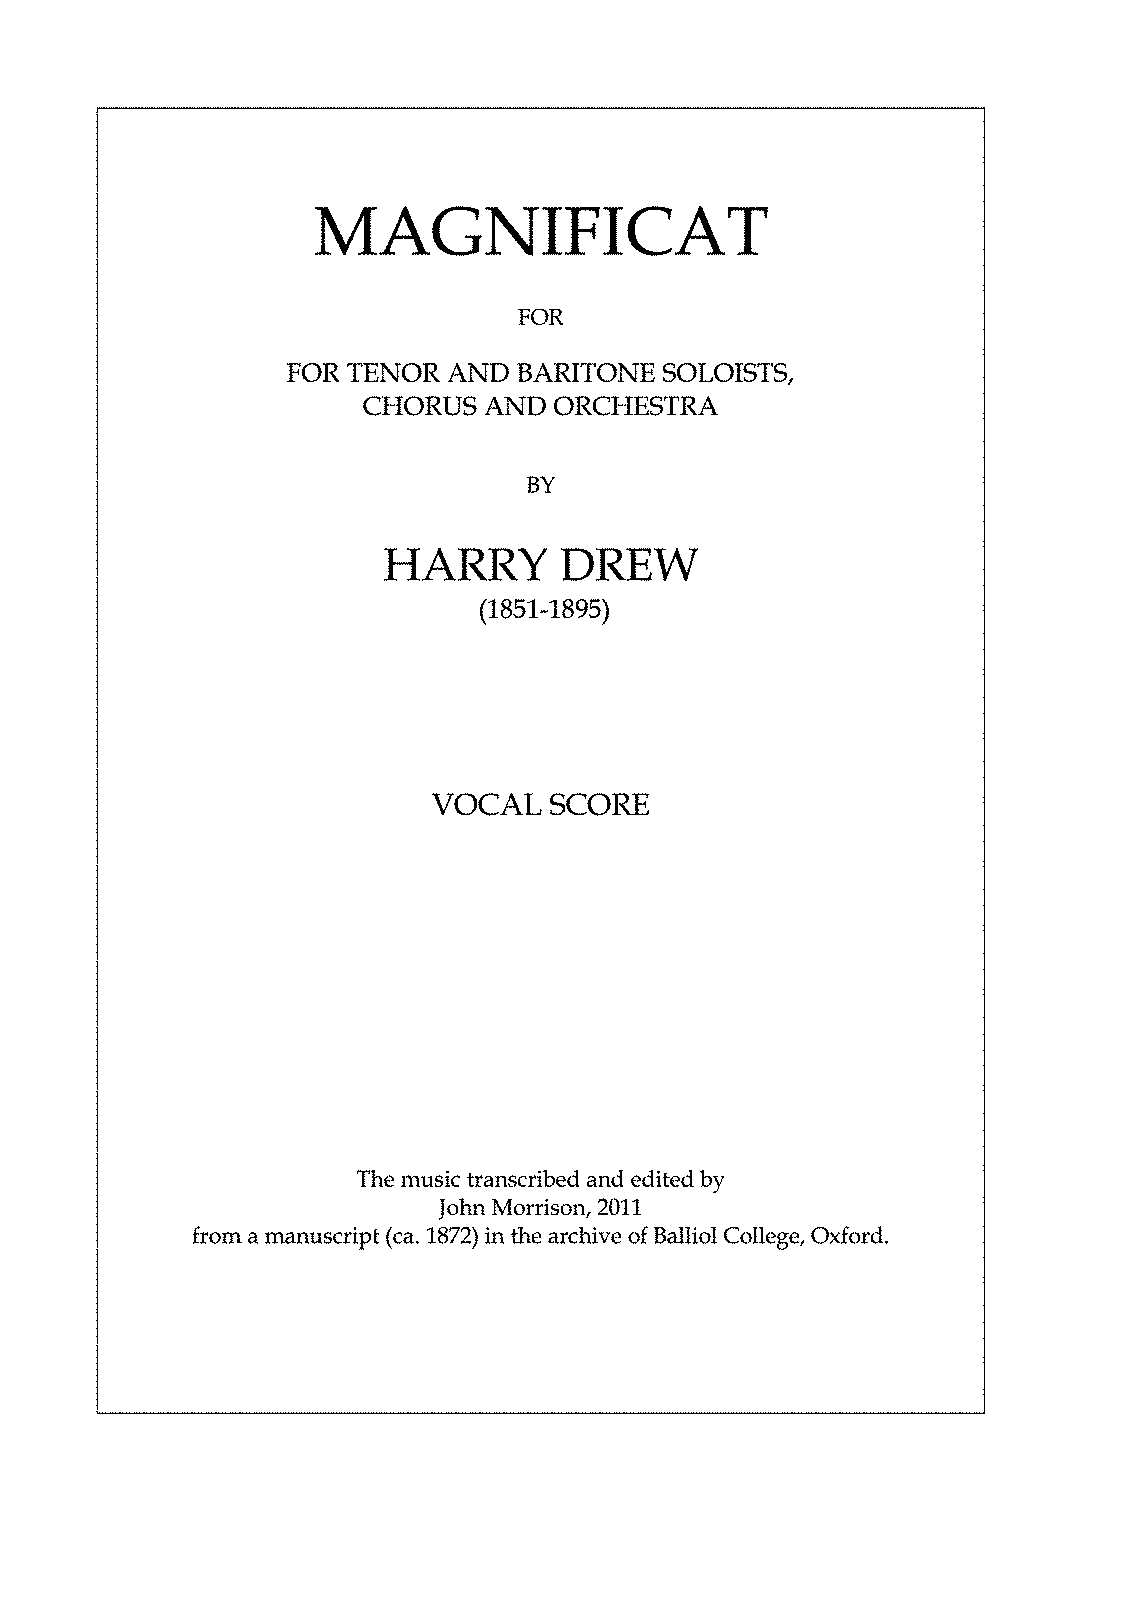 PMLP421032-Harry Drew Magnificat vocal score.pdf